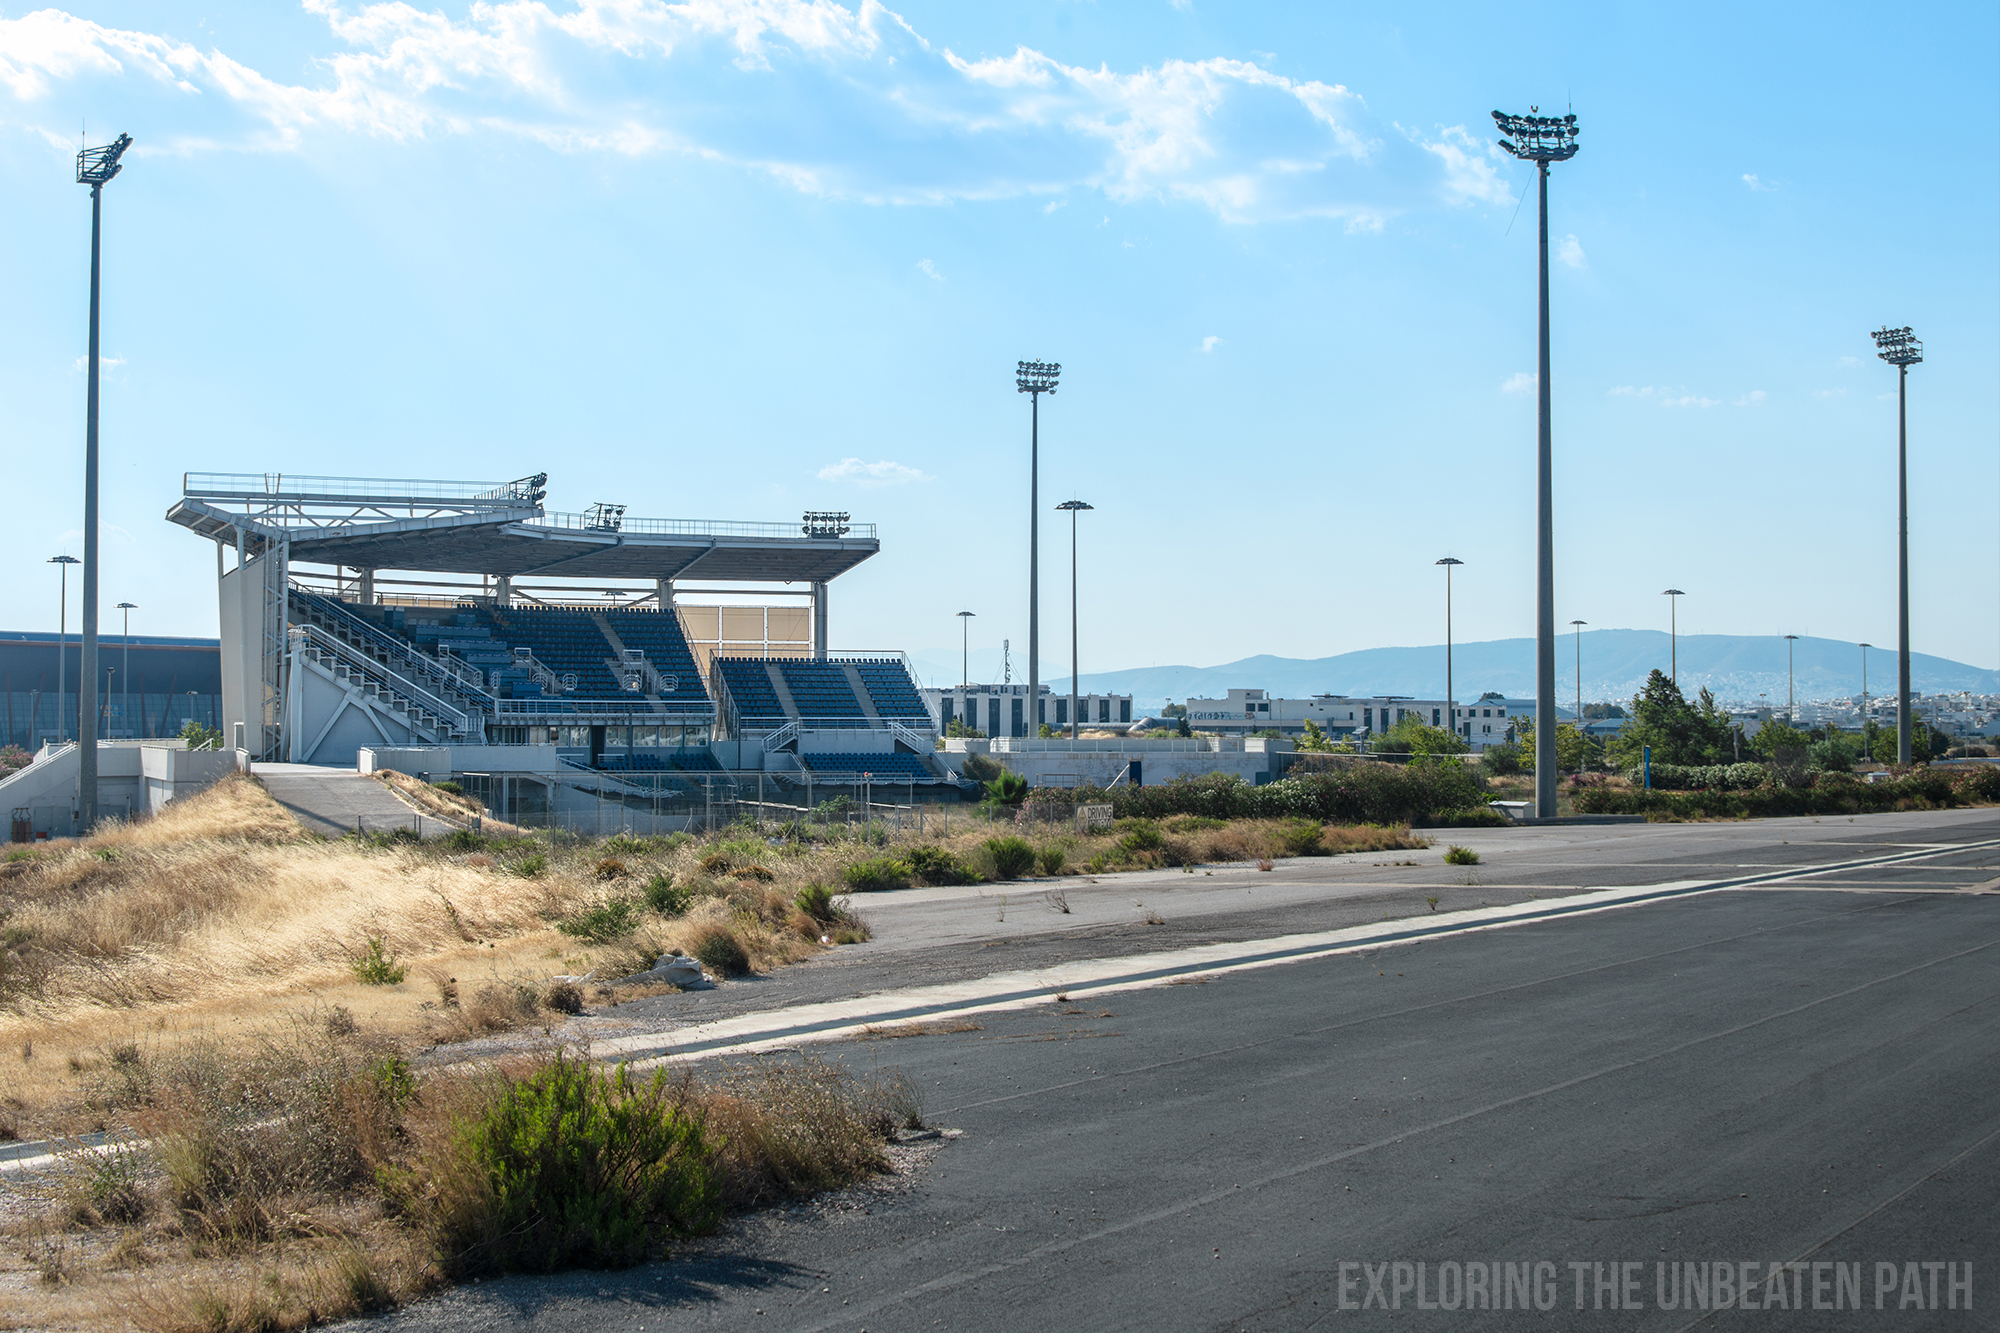 Greece abandoned Olympic stadiums urbex urban exploring